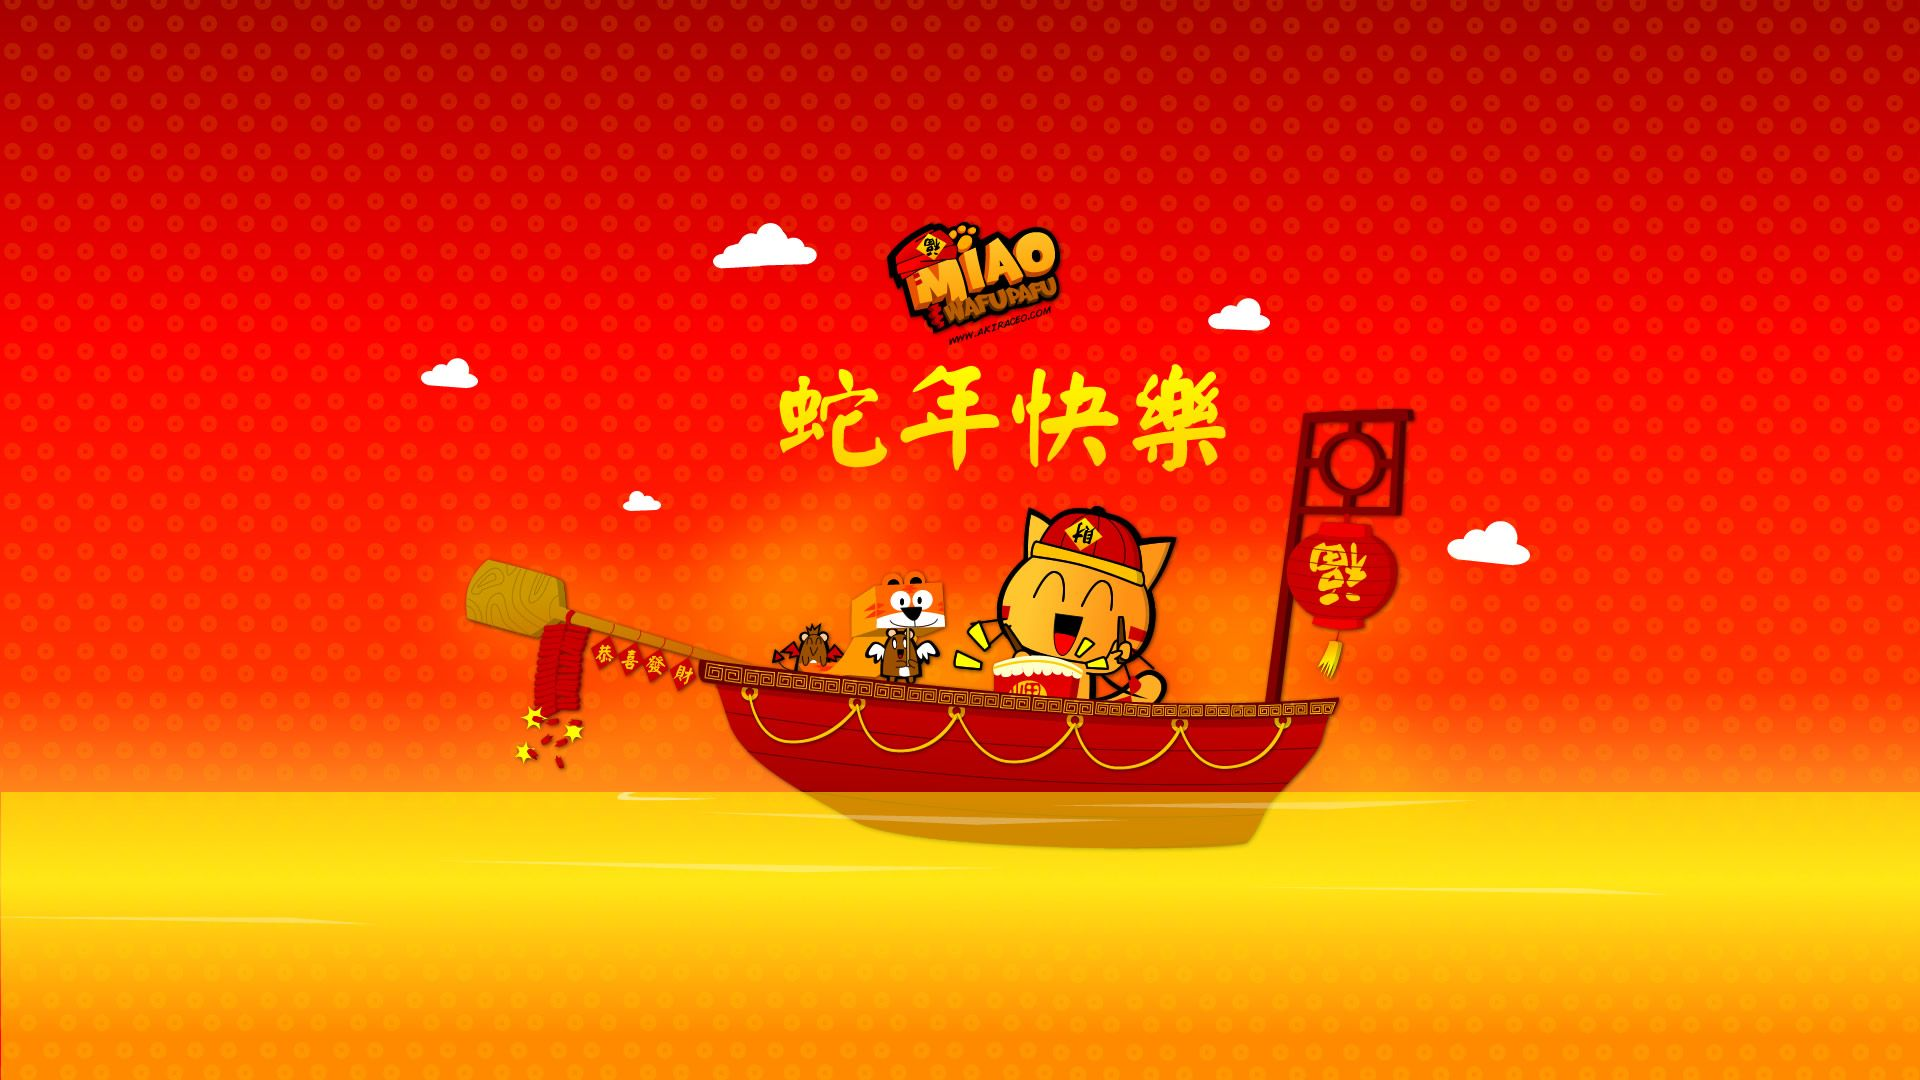 Chinese New Year hd wallpaper 1080p for pc